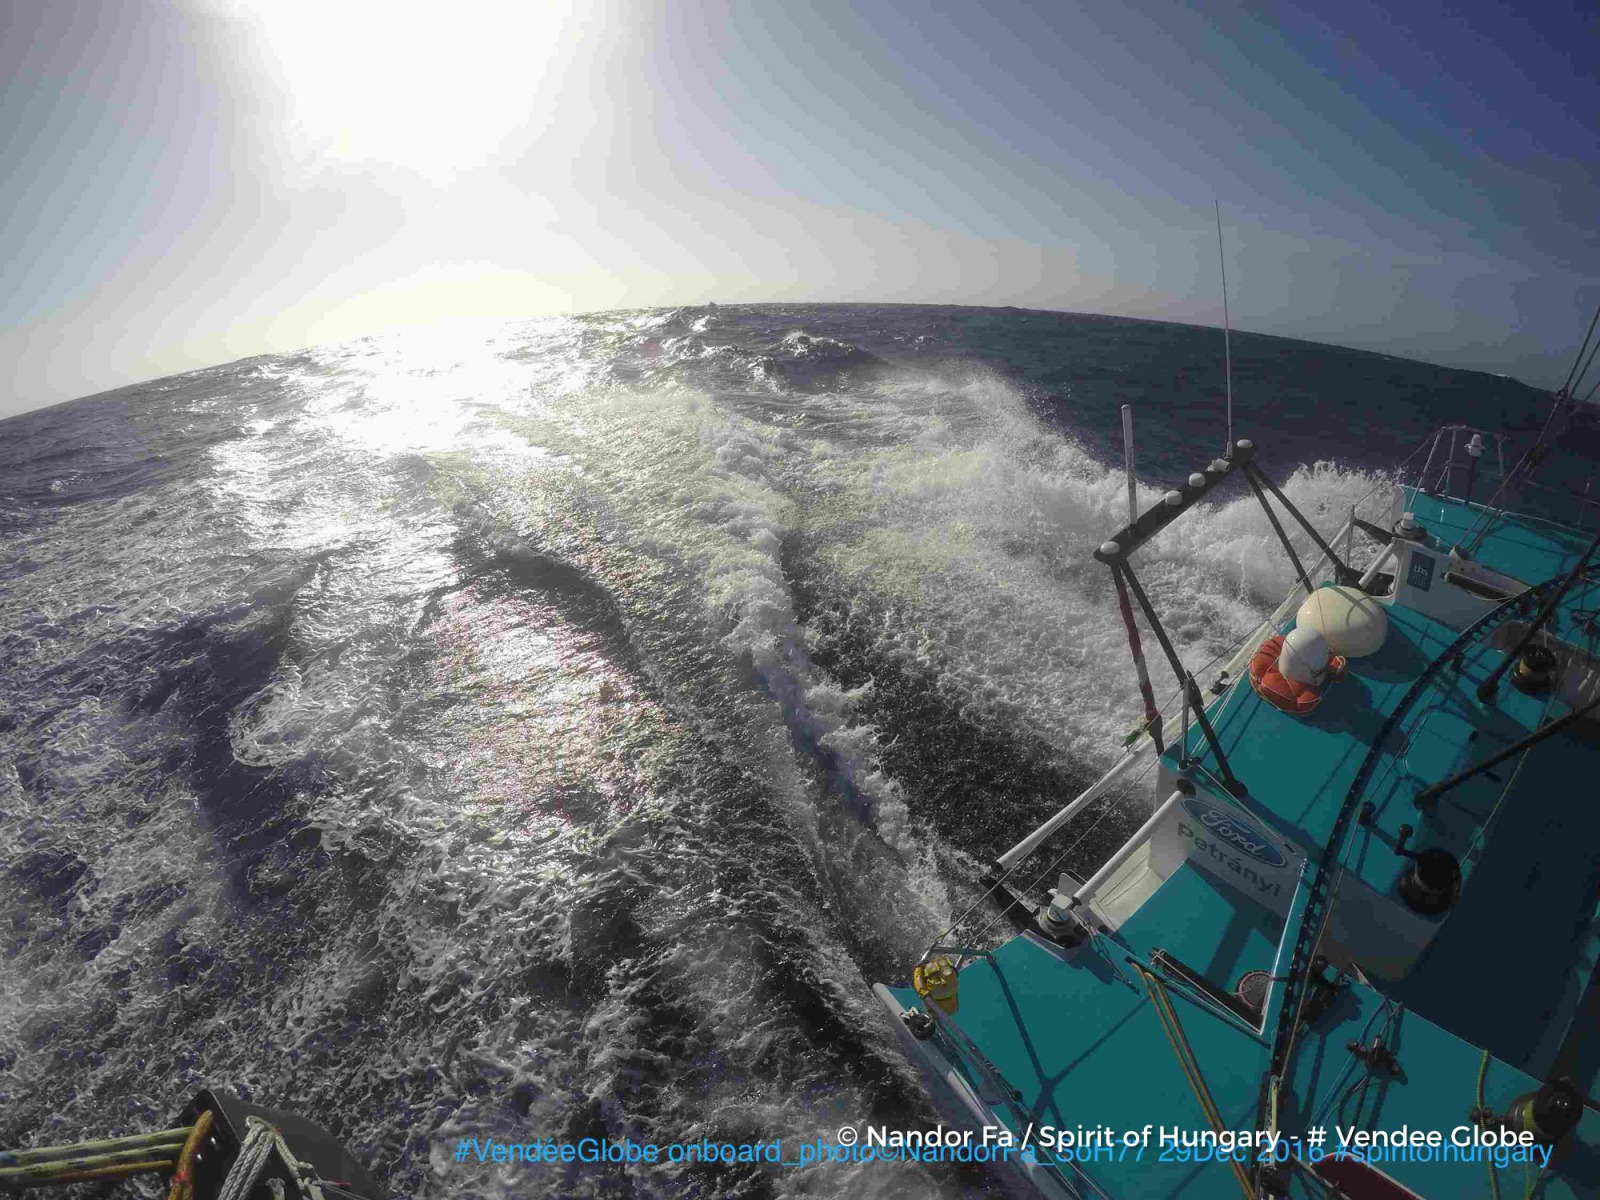 Photo sent from the boat Spirit of Hungary, on December 28th, 2016 - Photo Nandor FaPhoto envoyée depuis le bateau Spirit of Hungary le 28 Décembre 2016 - Photo Nandor FaSOH77 HEADING TO THE BIG CAPE - everything is all right on boardPoz: dec. 29, 07